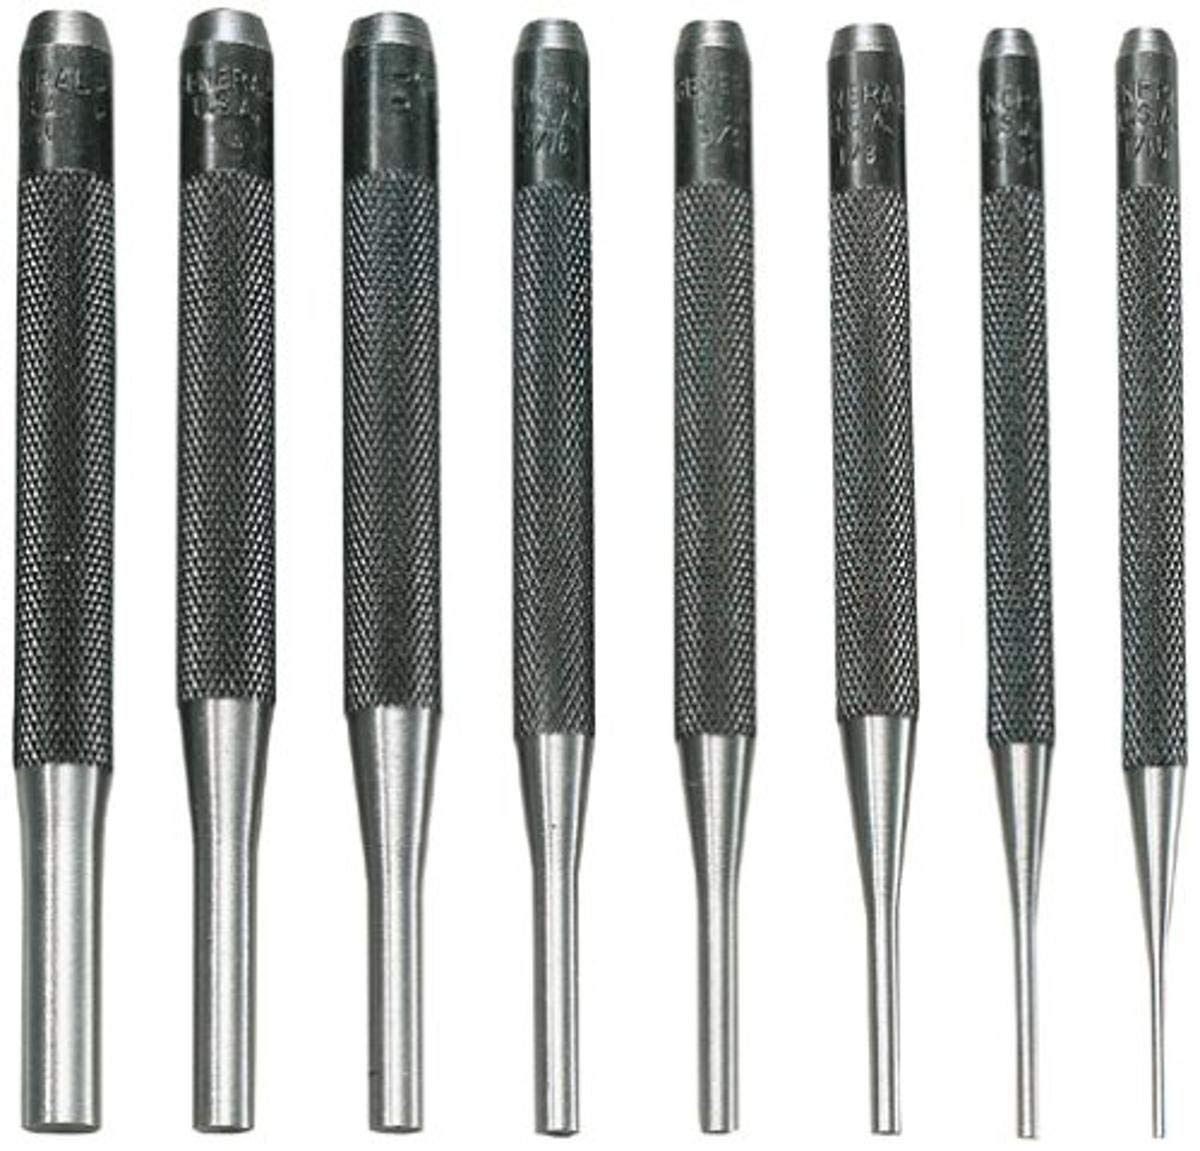 General Tools SPC75 Drive Pin Punches